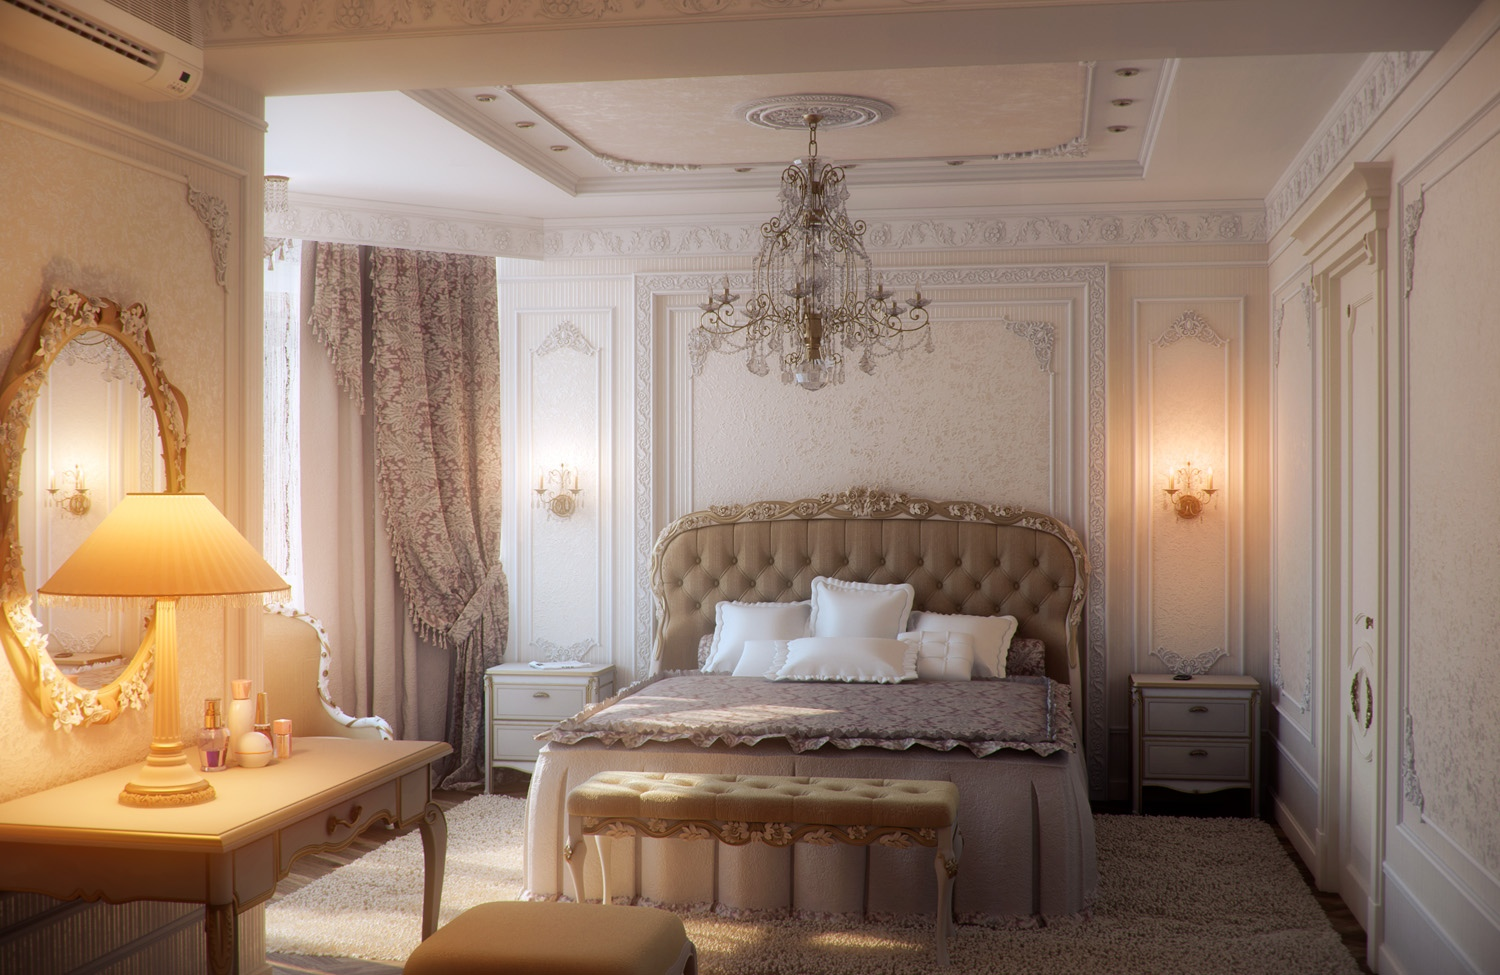 Bedrooms with traditional elegance for Bedroom style ideas